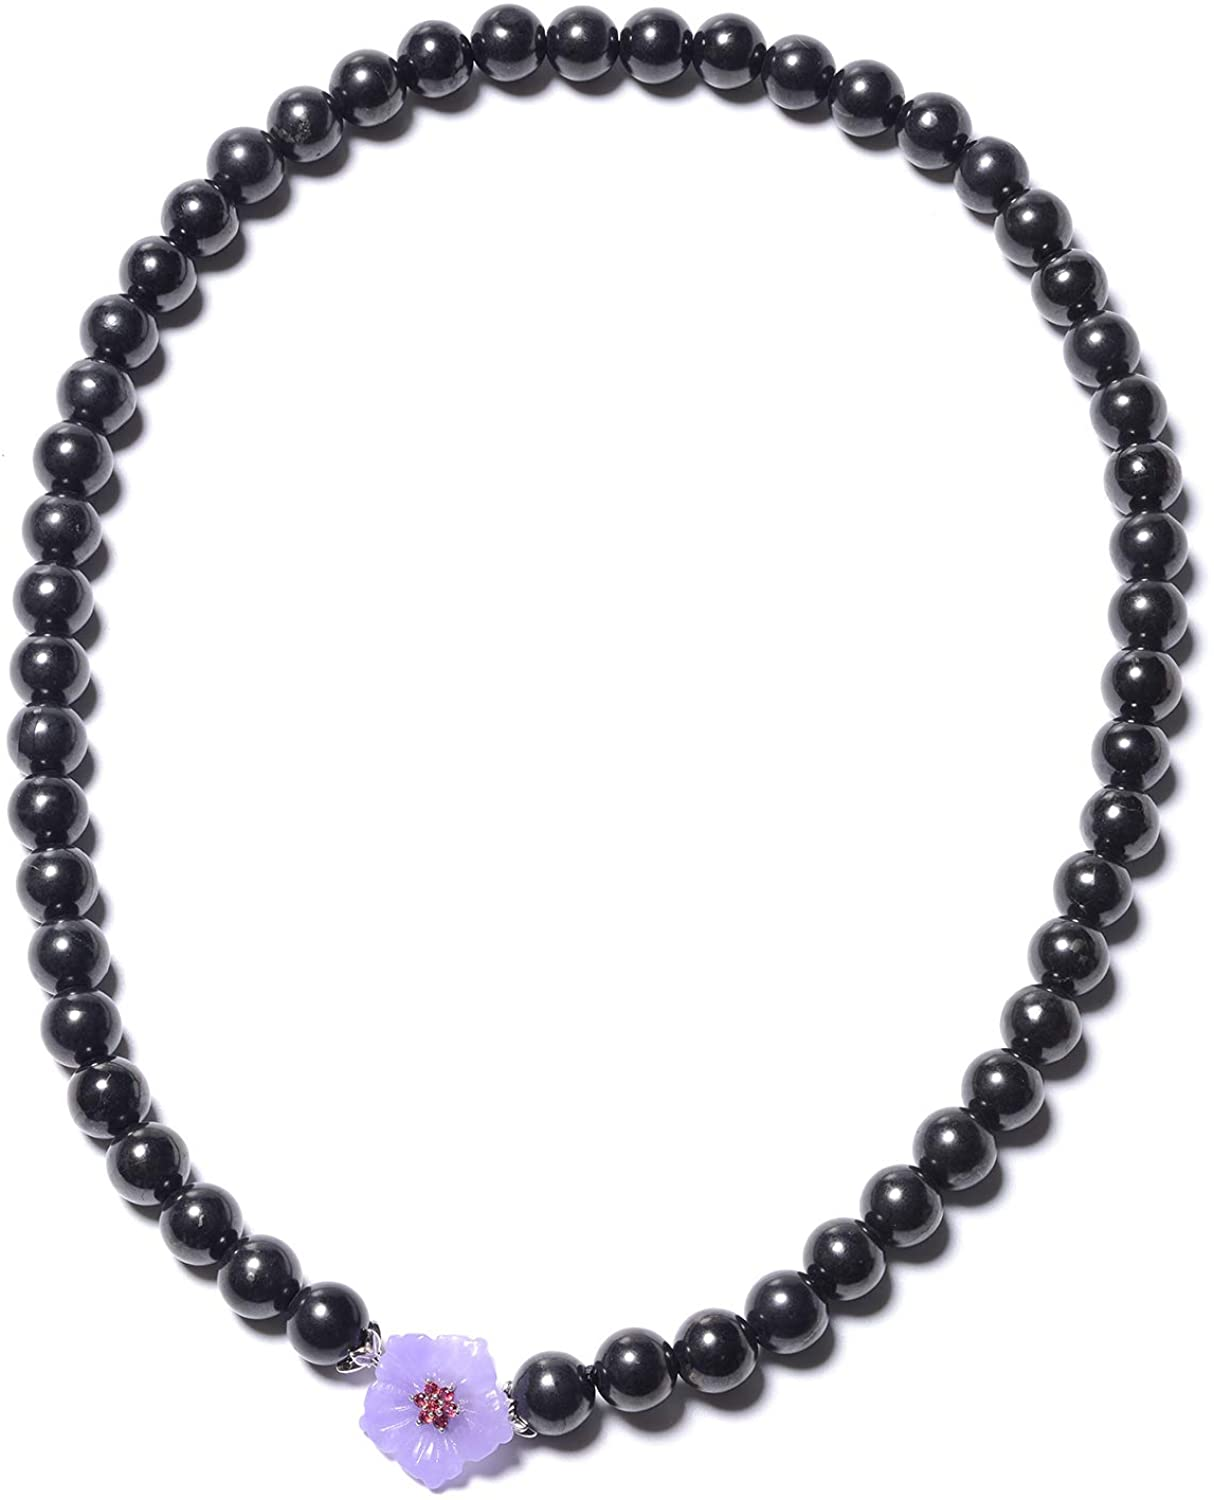 JARDIN COLLECTION 925 Sterling Silver Garnet Rhodium Plated Purple Jade Healing Pain Relief Black Karelian Shungite Beaded Necklace with Clasp Anniversary Jewelry Gift for Women Size 20